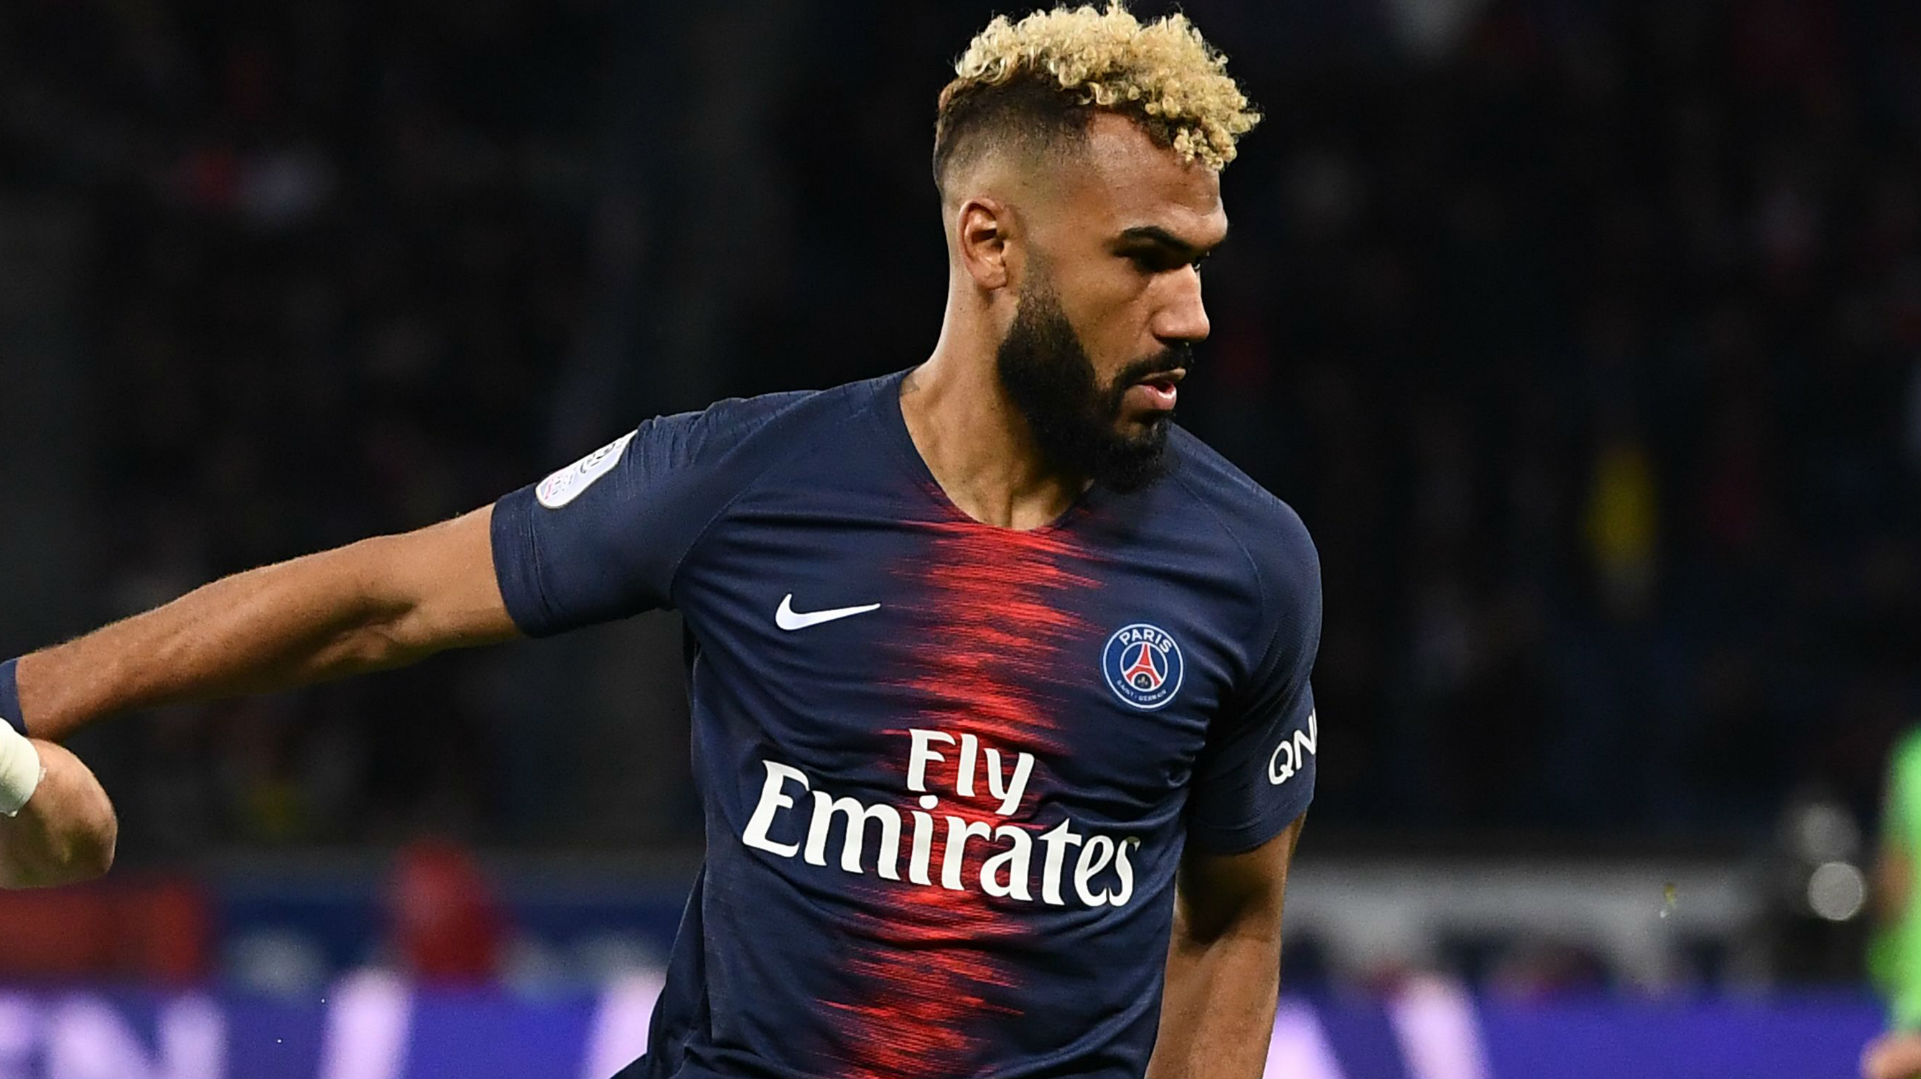 Cameroon U0026 39 S Eric Choupo Moting Wins First Career Title With